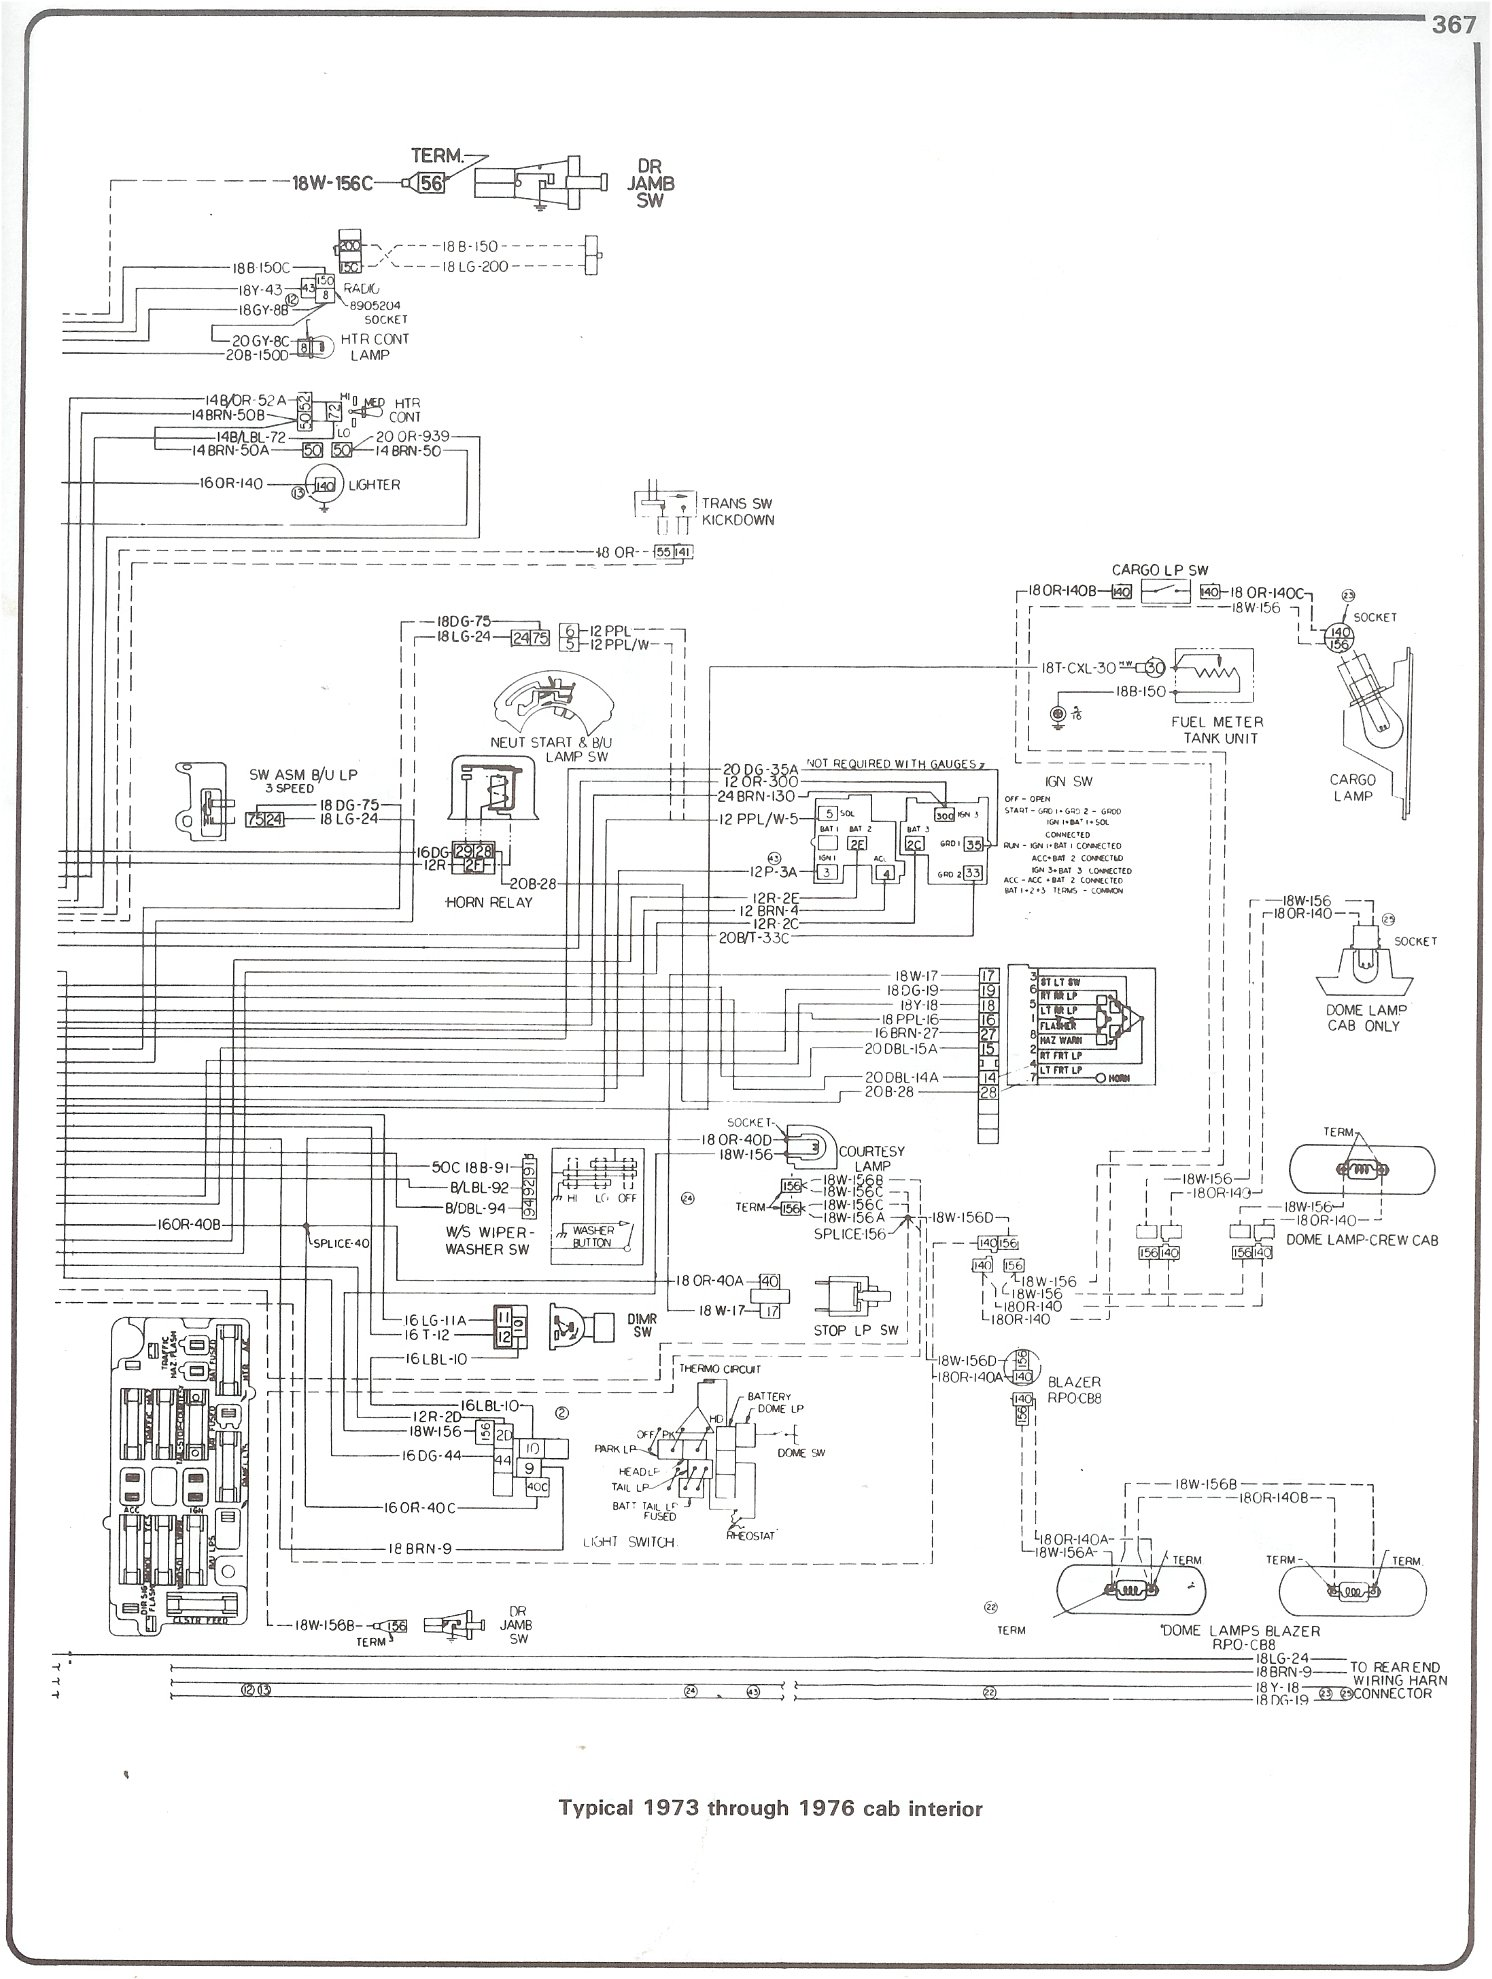 1976 Chevy Blazer Wiring Diagram Schematics Diagrams 1994 Pickup Complete 73 87 Rh Forum 87chevytrucks Com K5 2001